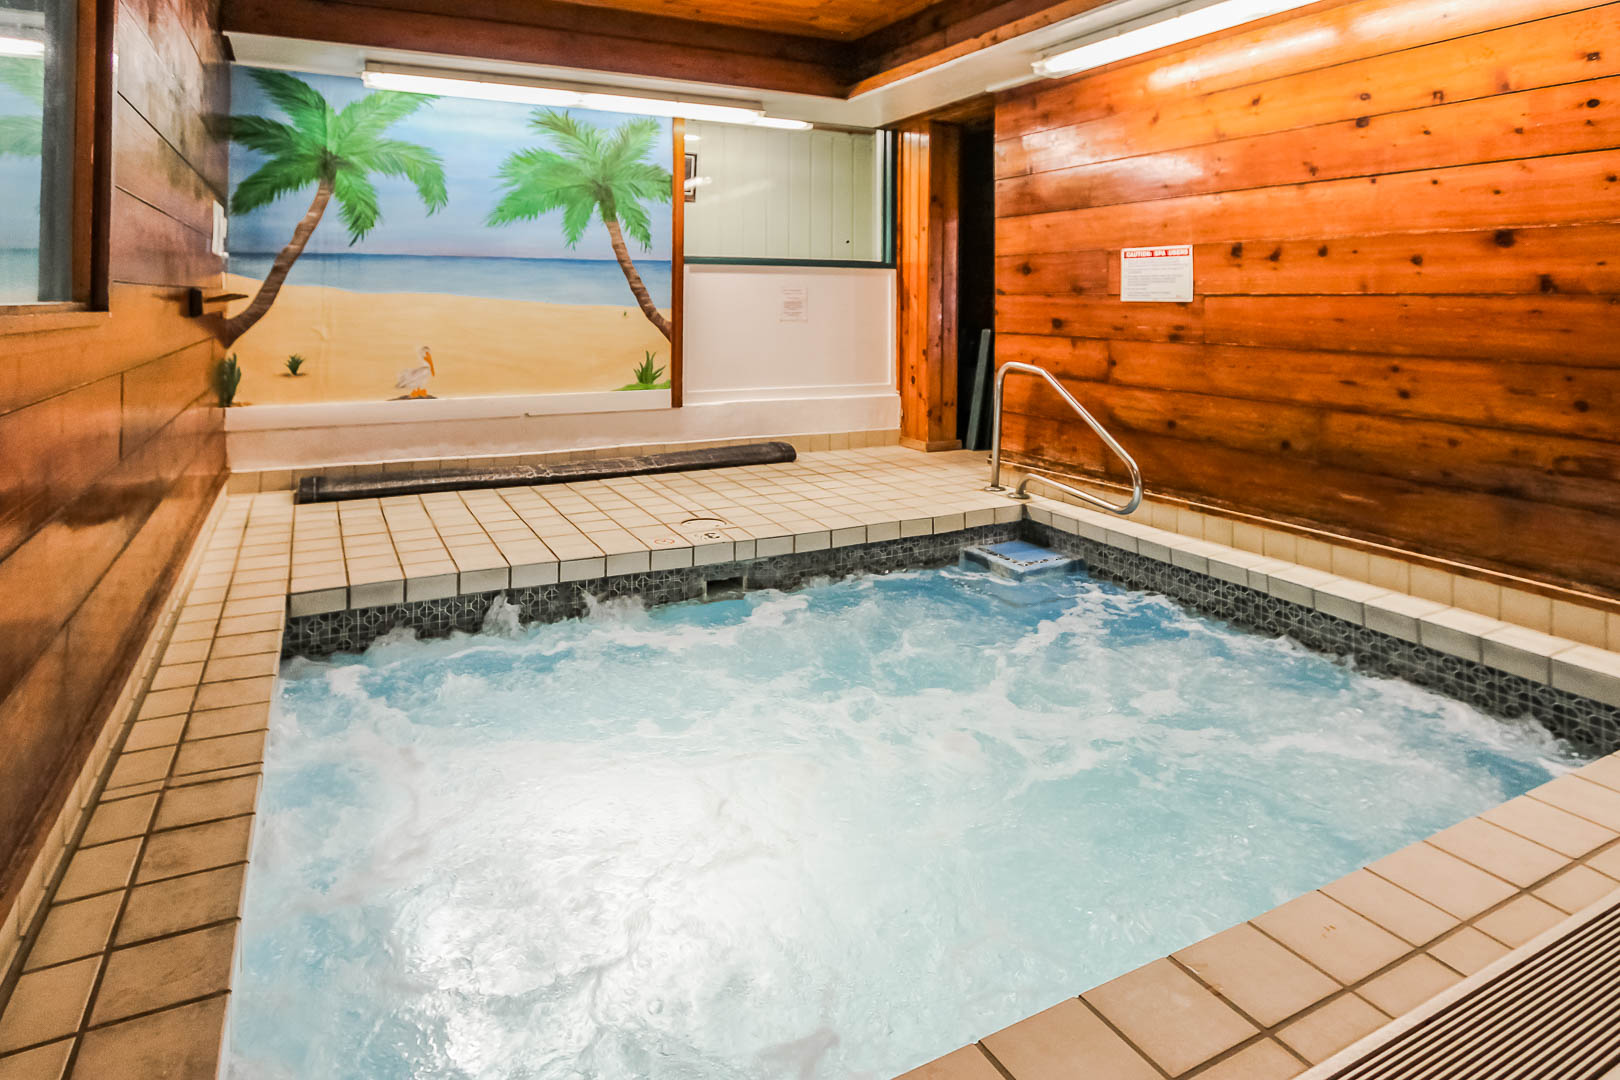 A massive indoor Jacuzzi tub at VRI's Village of Loon Mountain in New Hampshire.